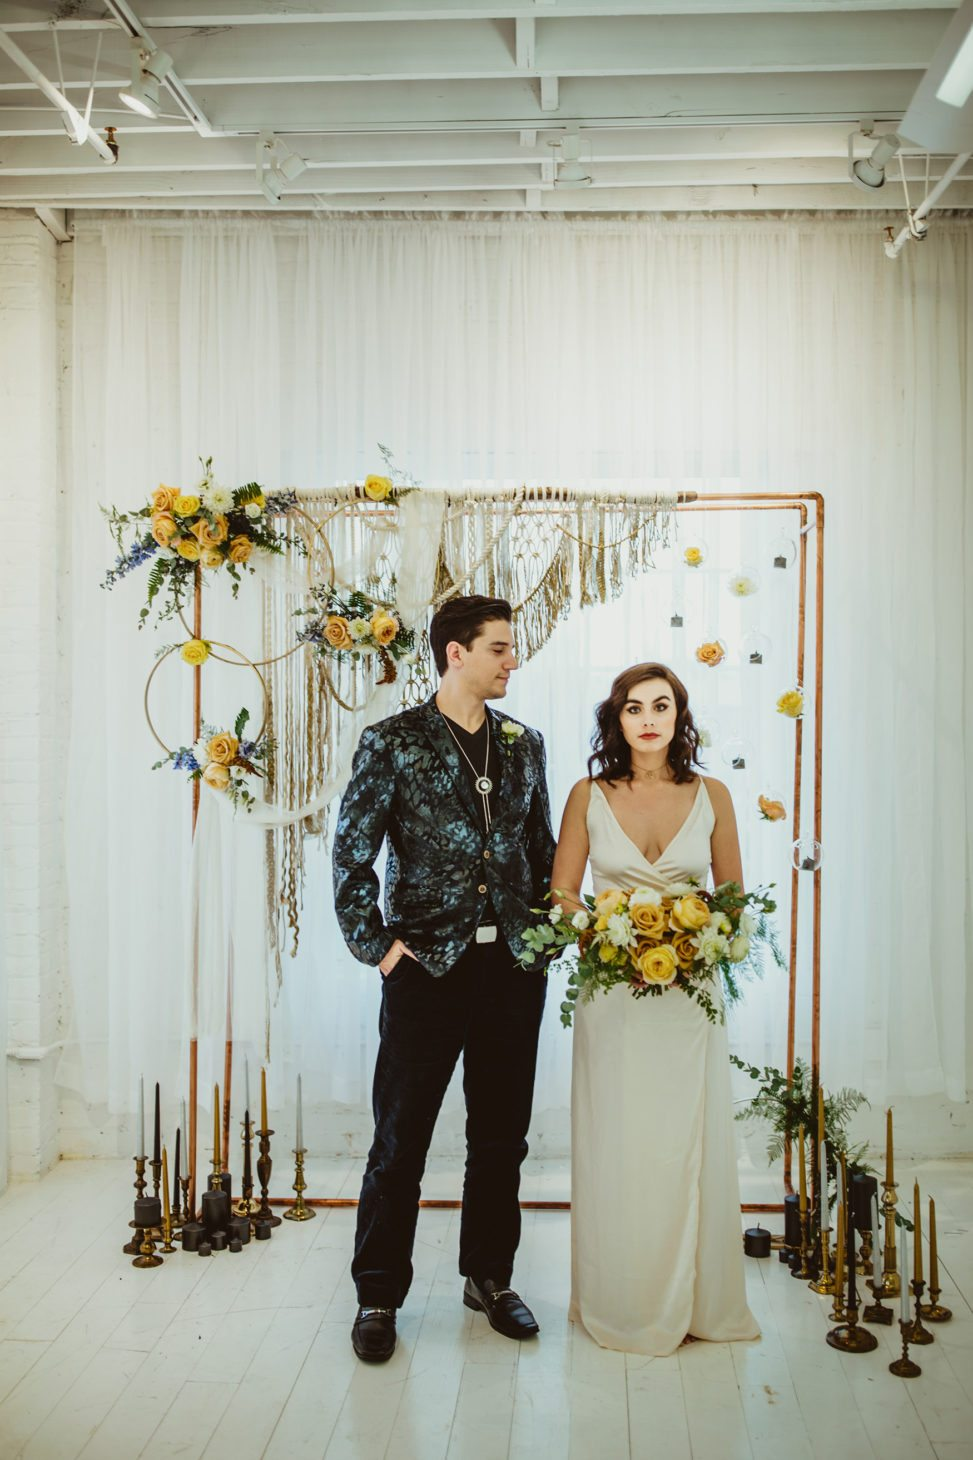 bride and groom standing near an alter with flowers, macrame, and candles